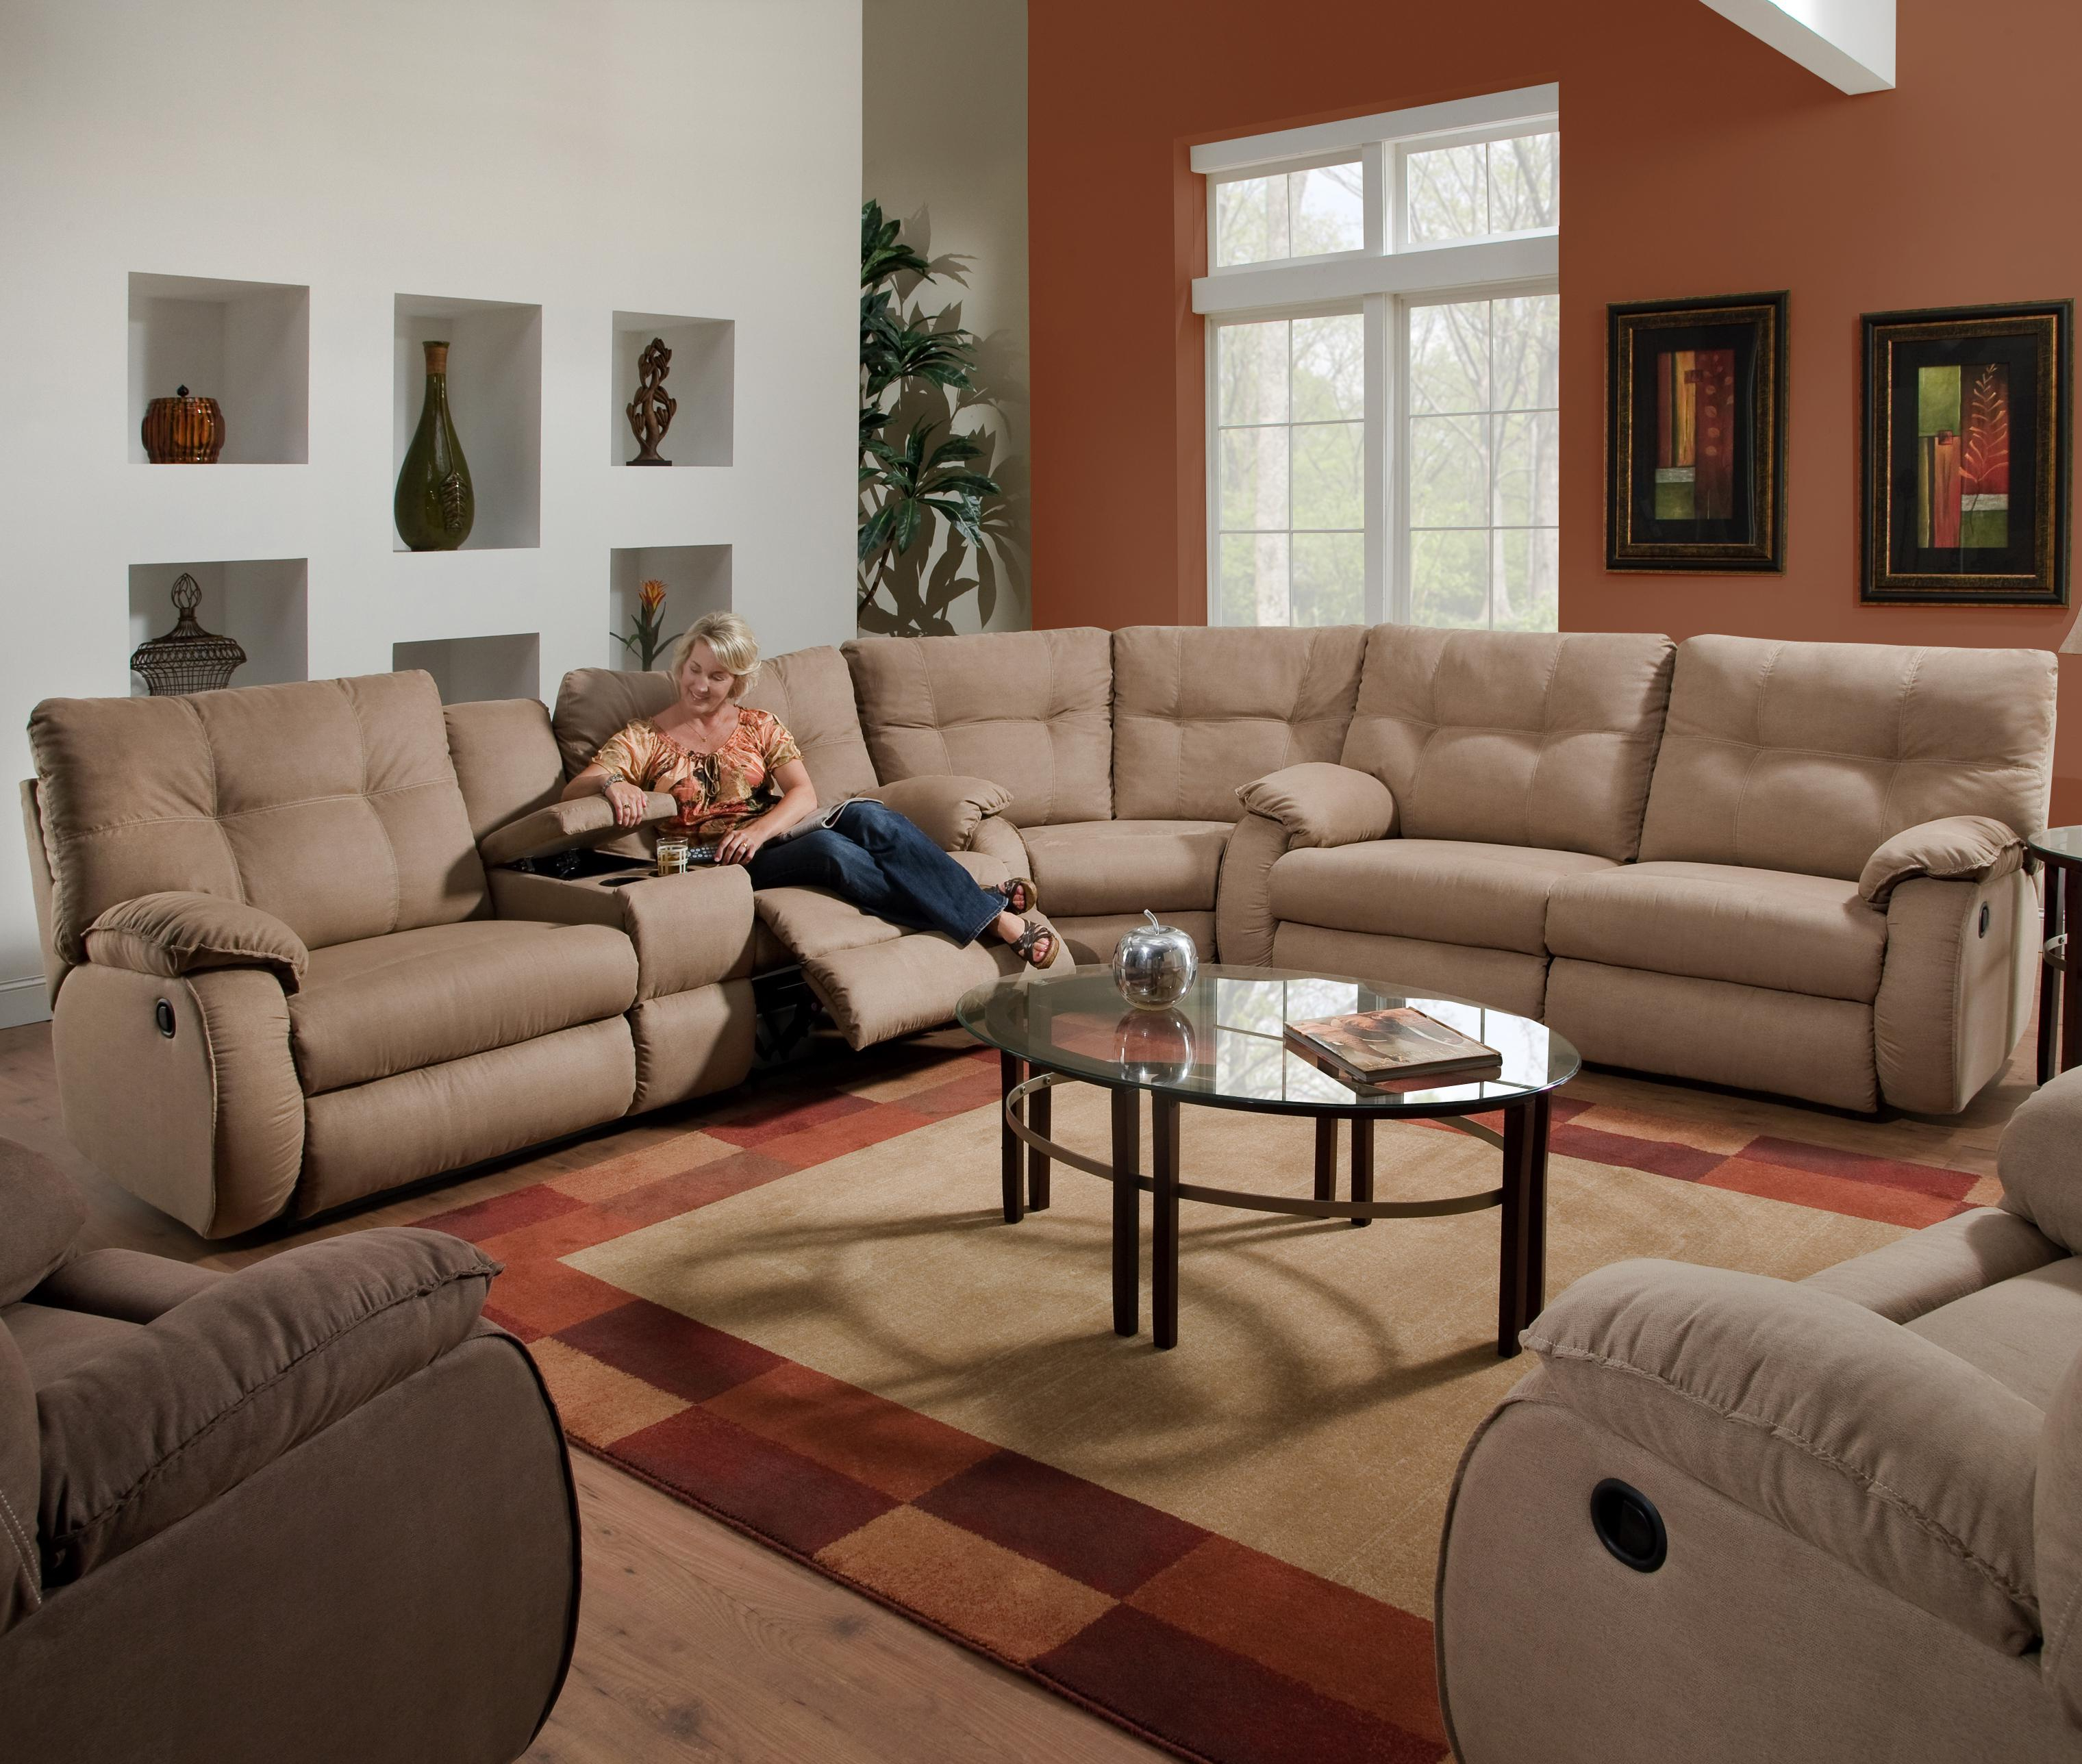 Denali Light Grey 6 Piece Reclining Sectionals With 2 Power Headrests Inside 2019 Sectional Sofa With Hide A Bed (Gallery 18 of 20)